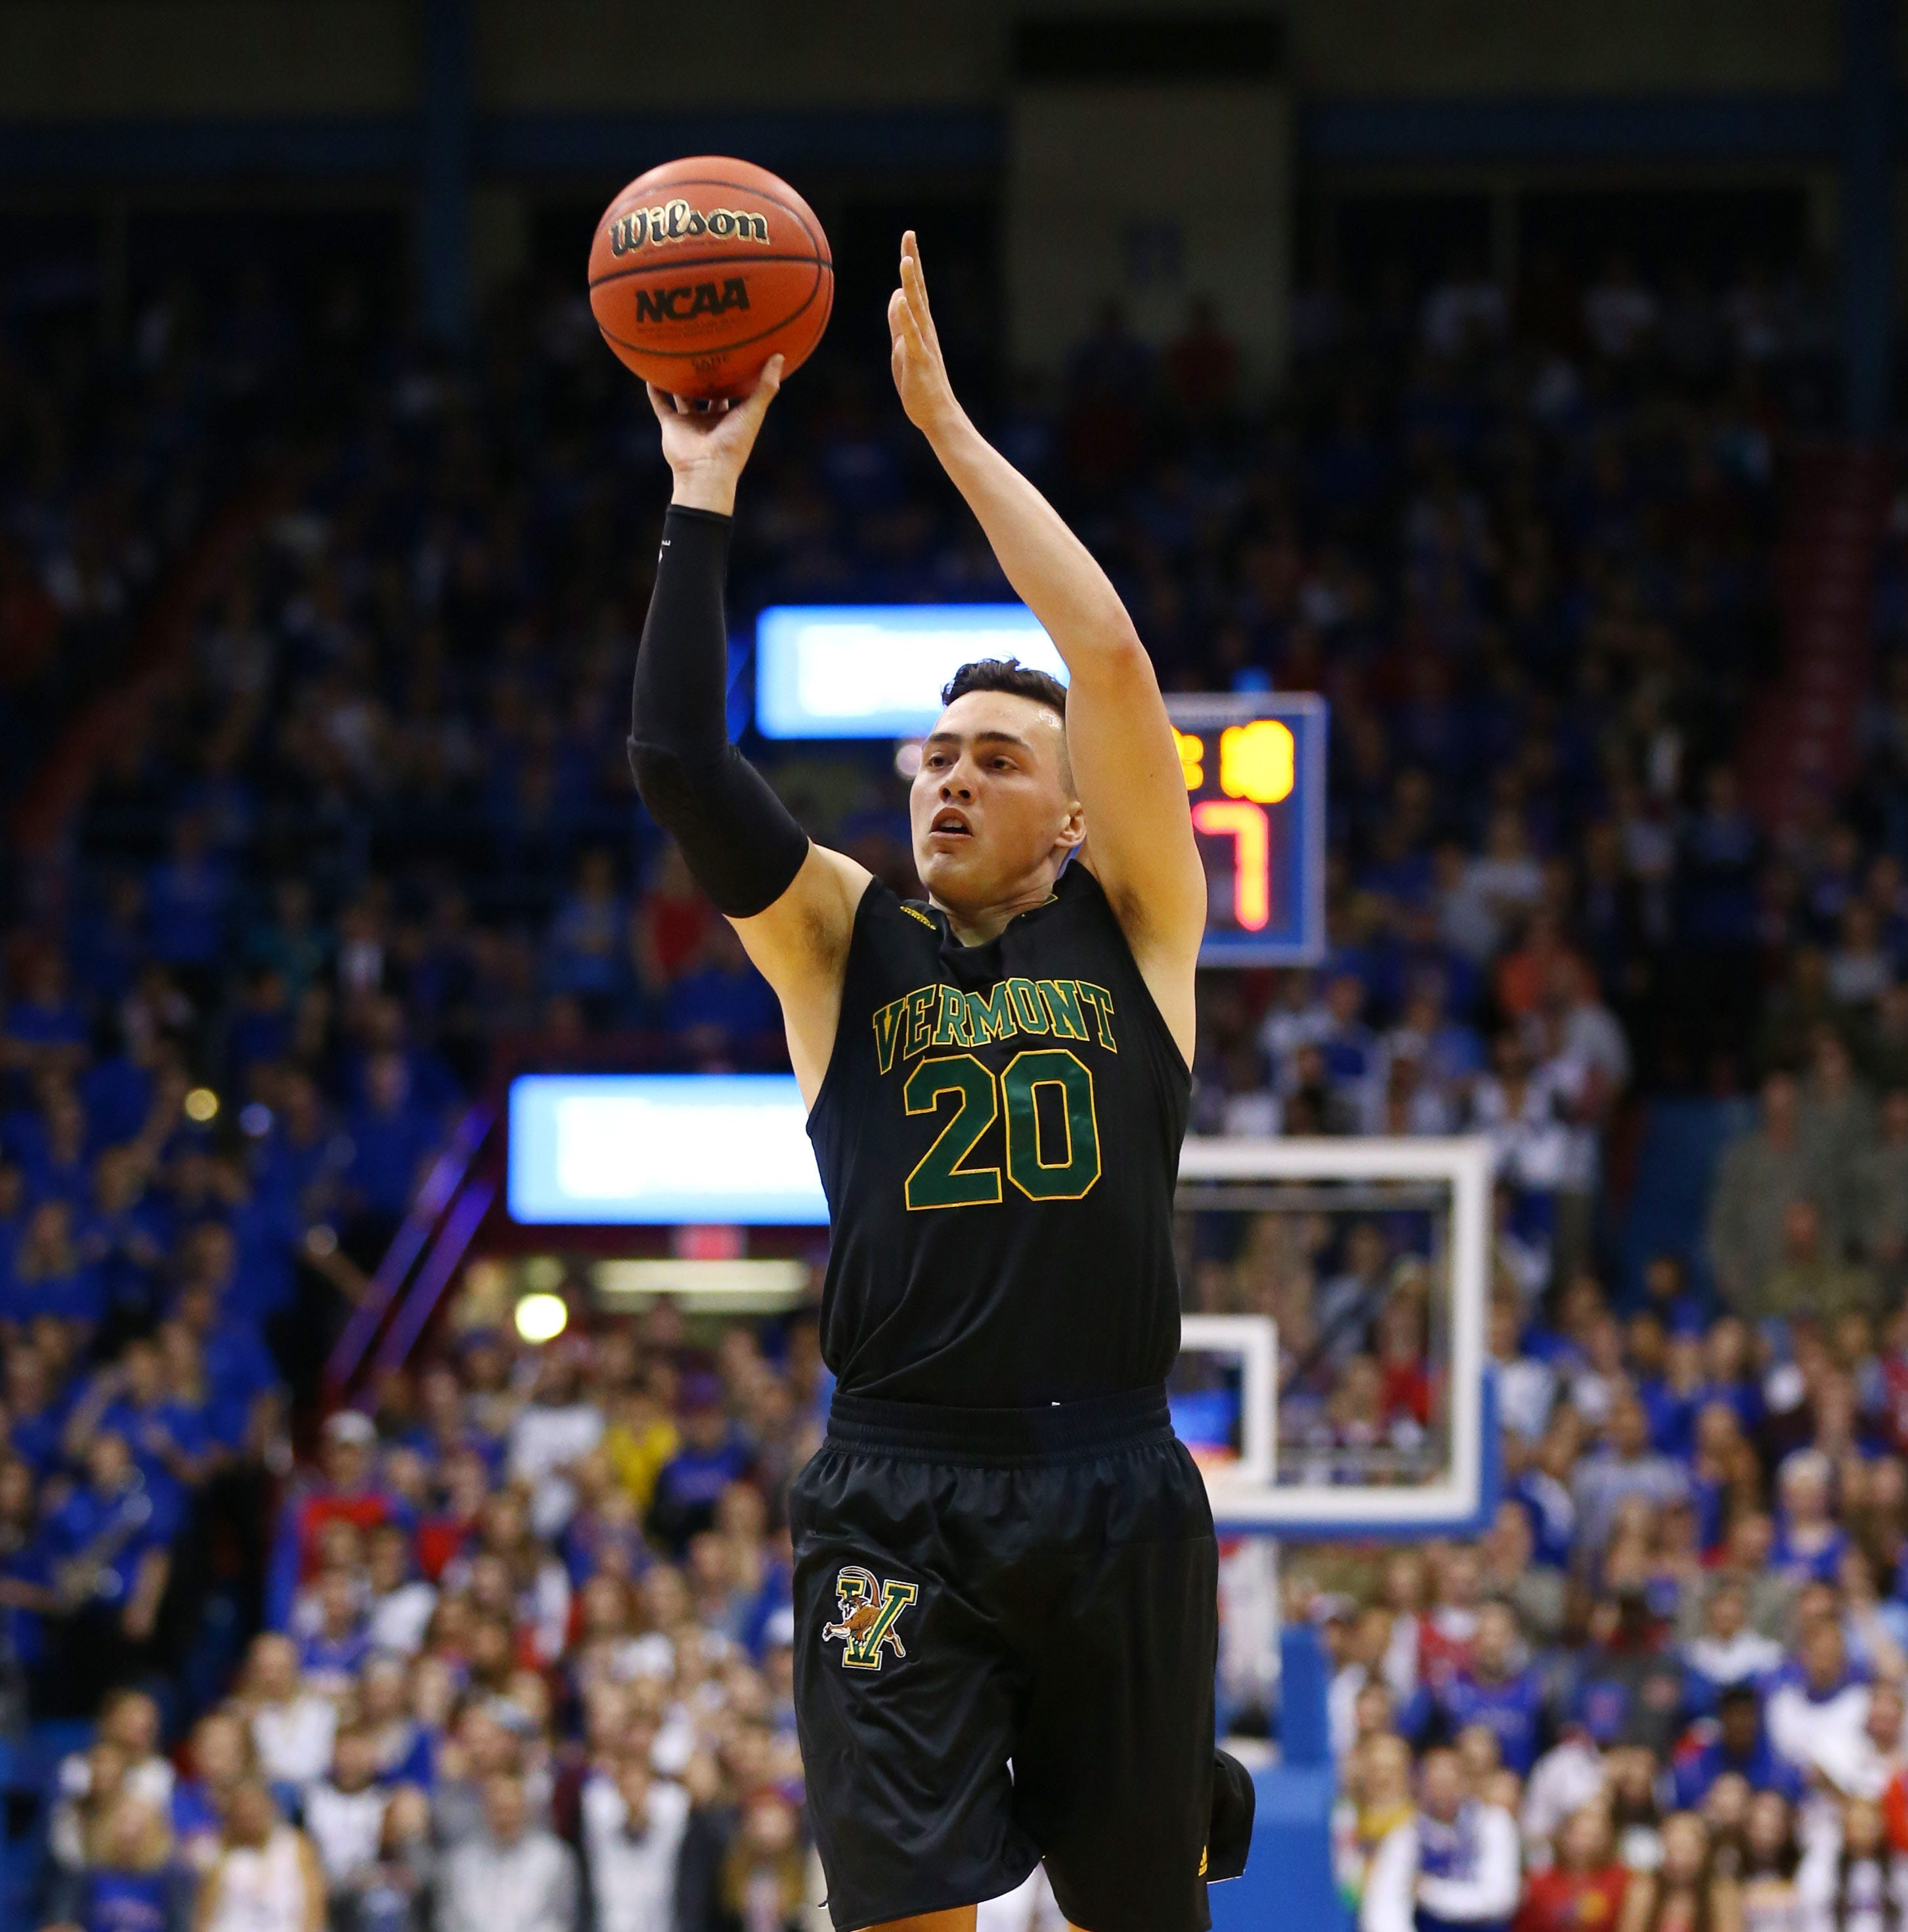 UVM men's basketball: Vick, No. 2 Jayhawks too much for Catamounts